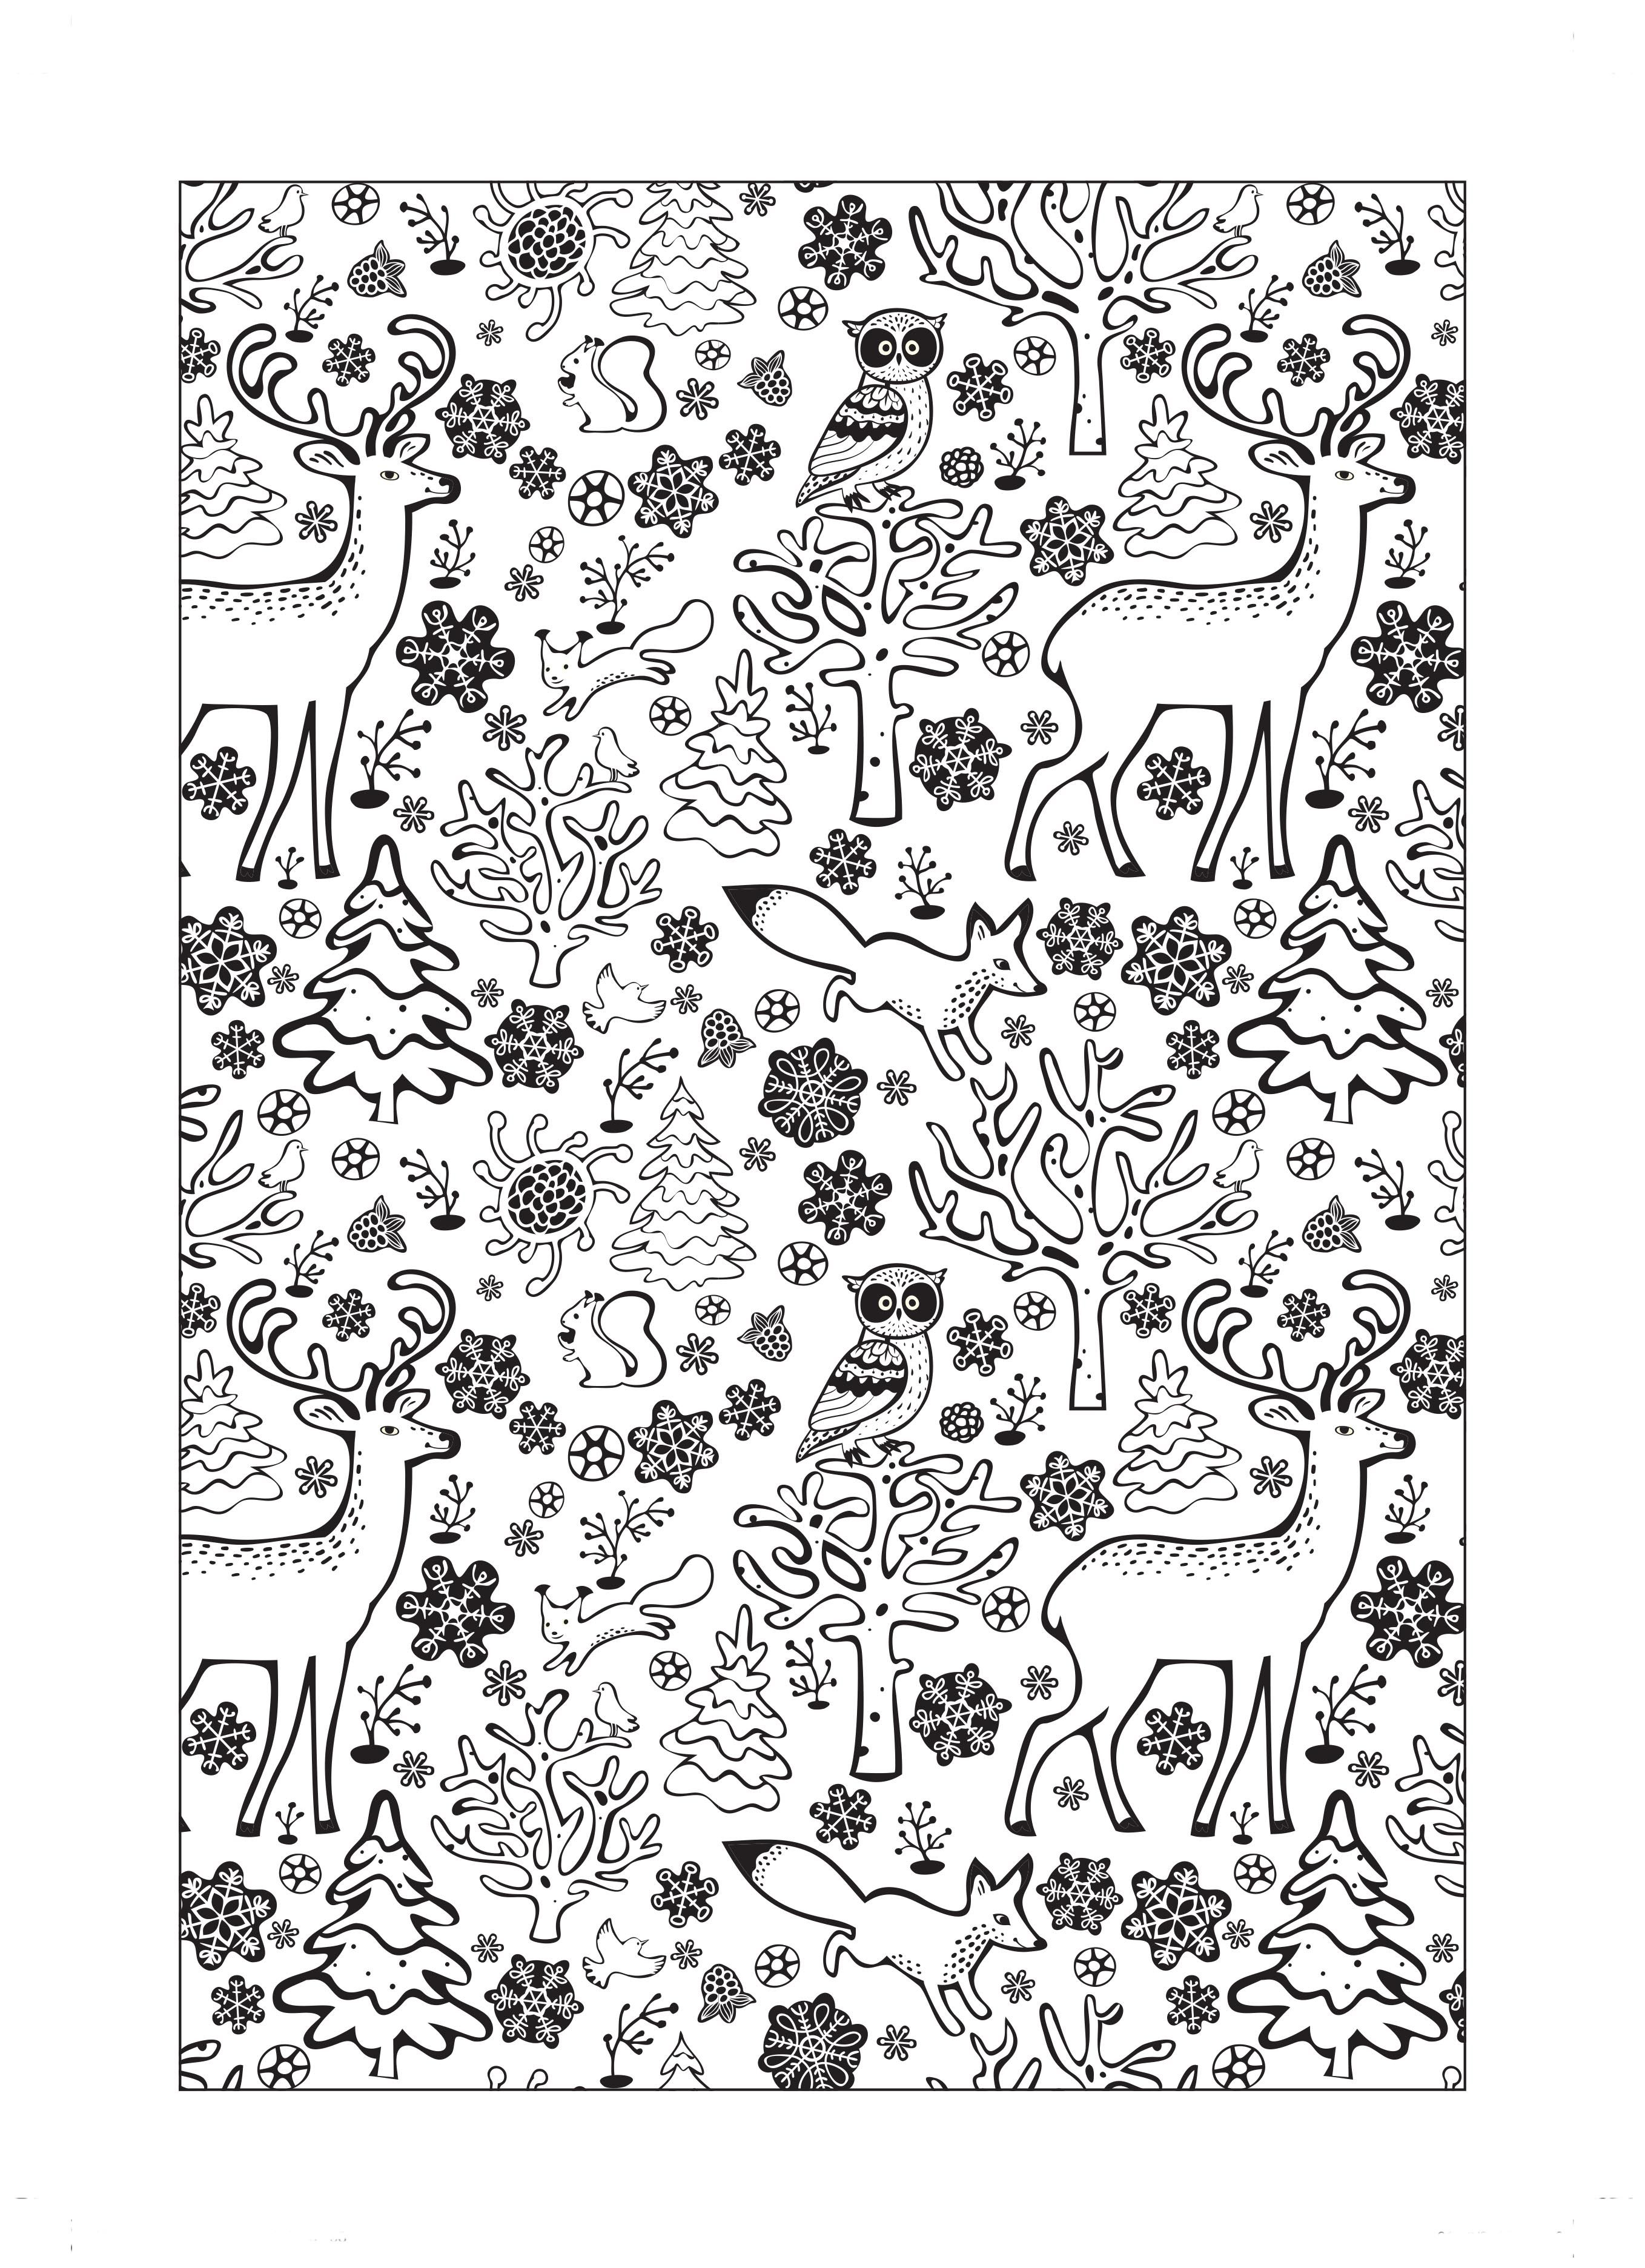 Walk in a winter wonderland with this gorgeous free colouring sheet